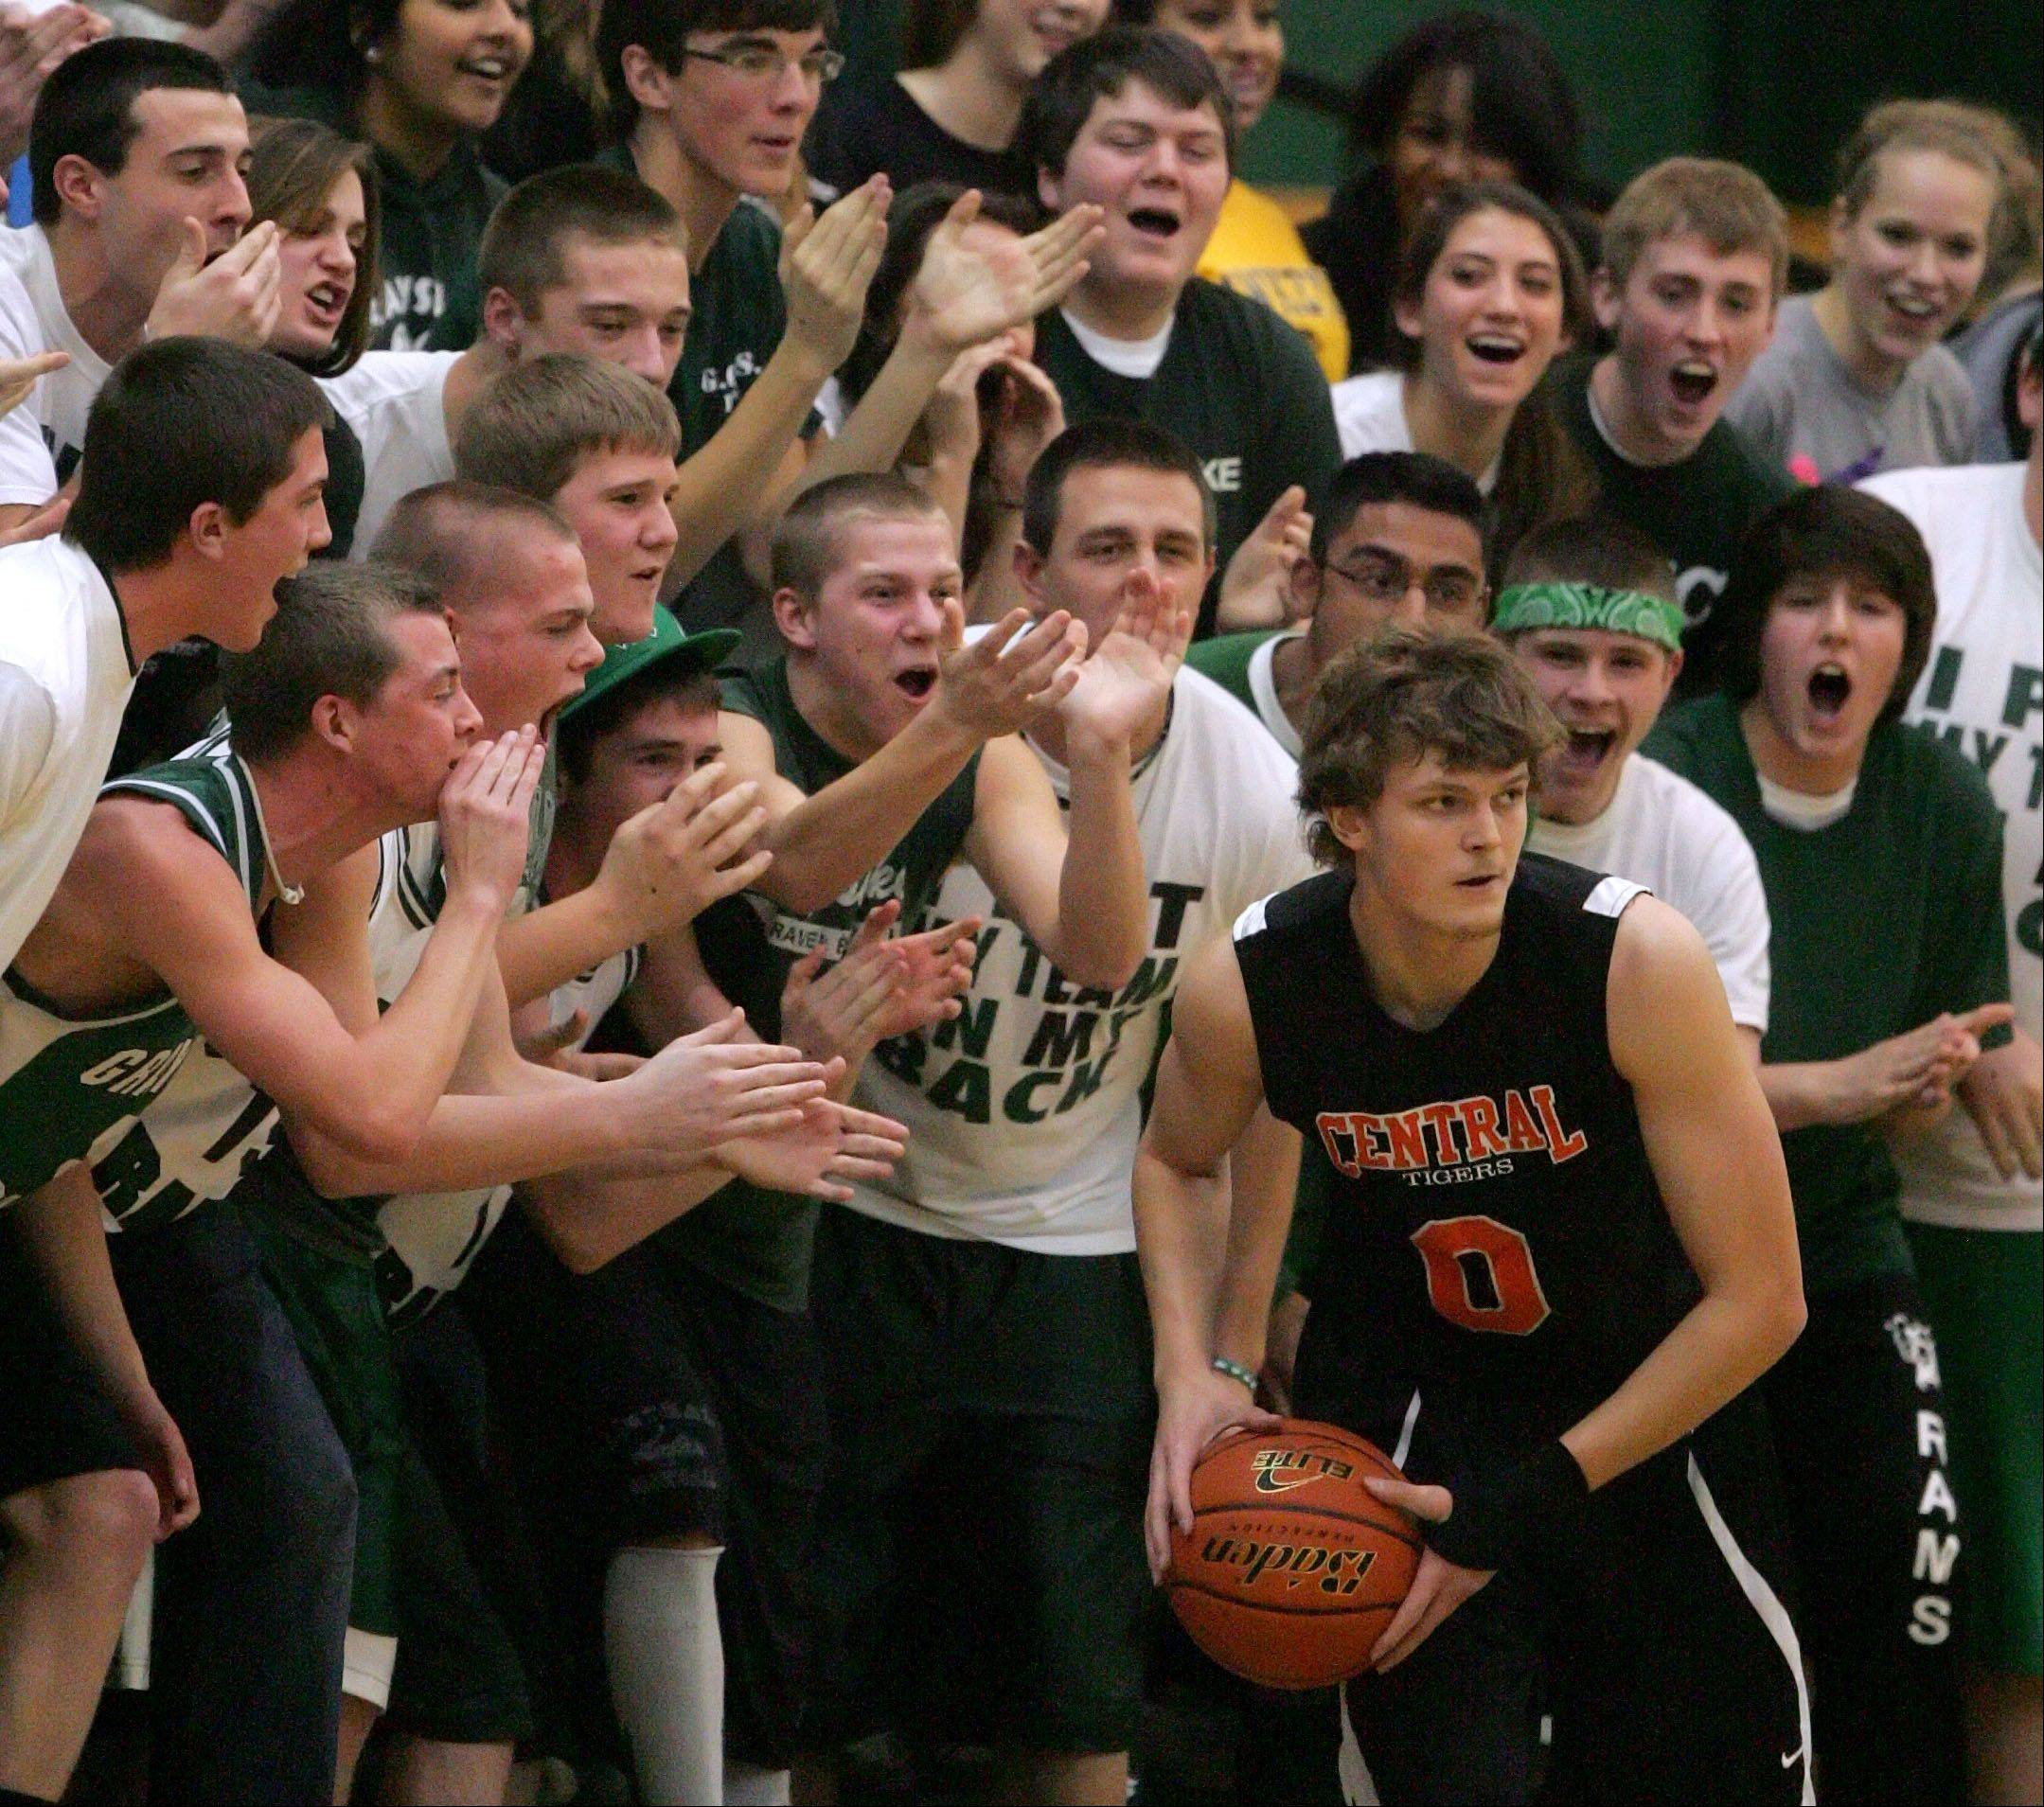 Grayslake Central's fans attempt to bother Crystal Lake Central's Nick Decoster on an inbound pass.